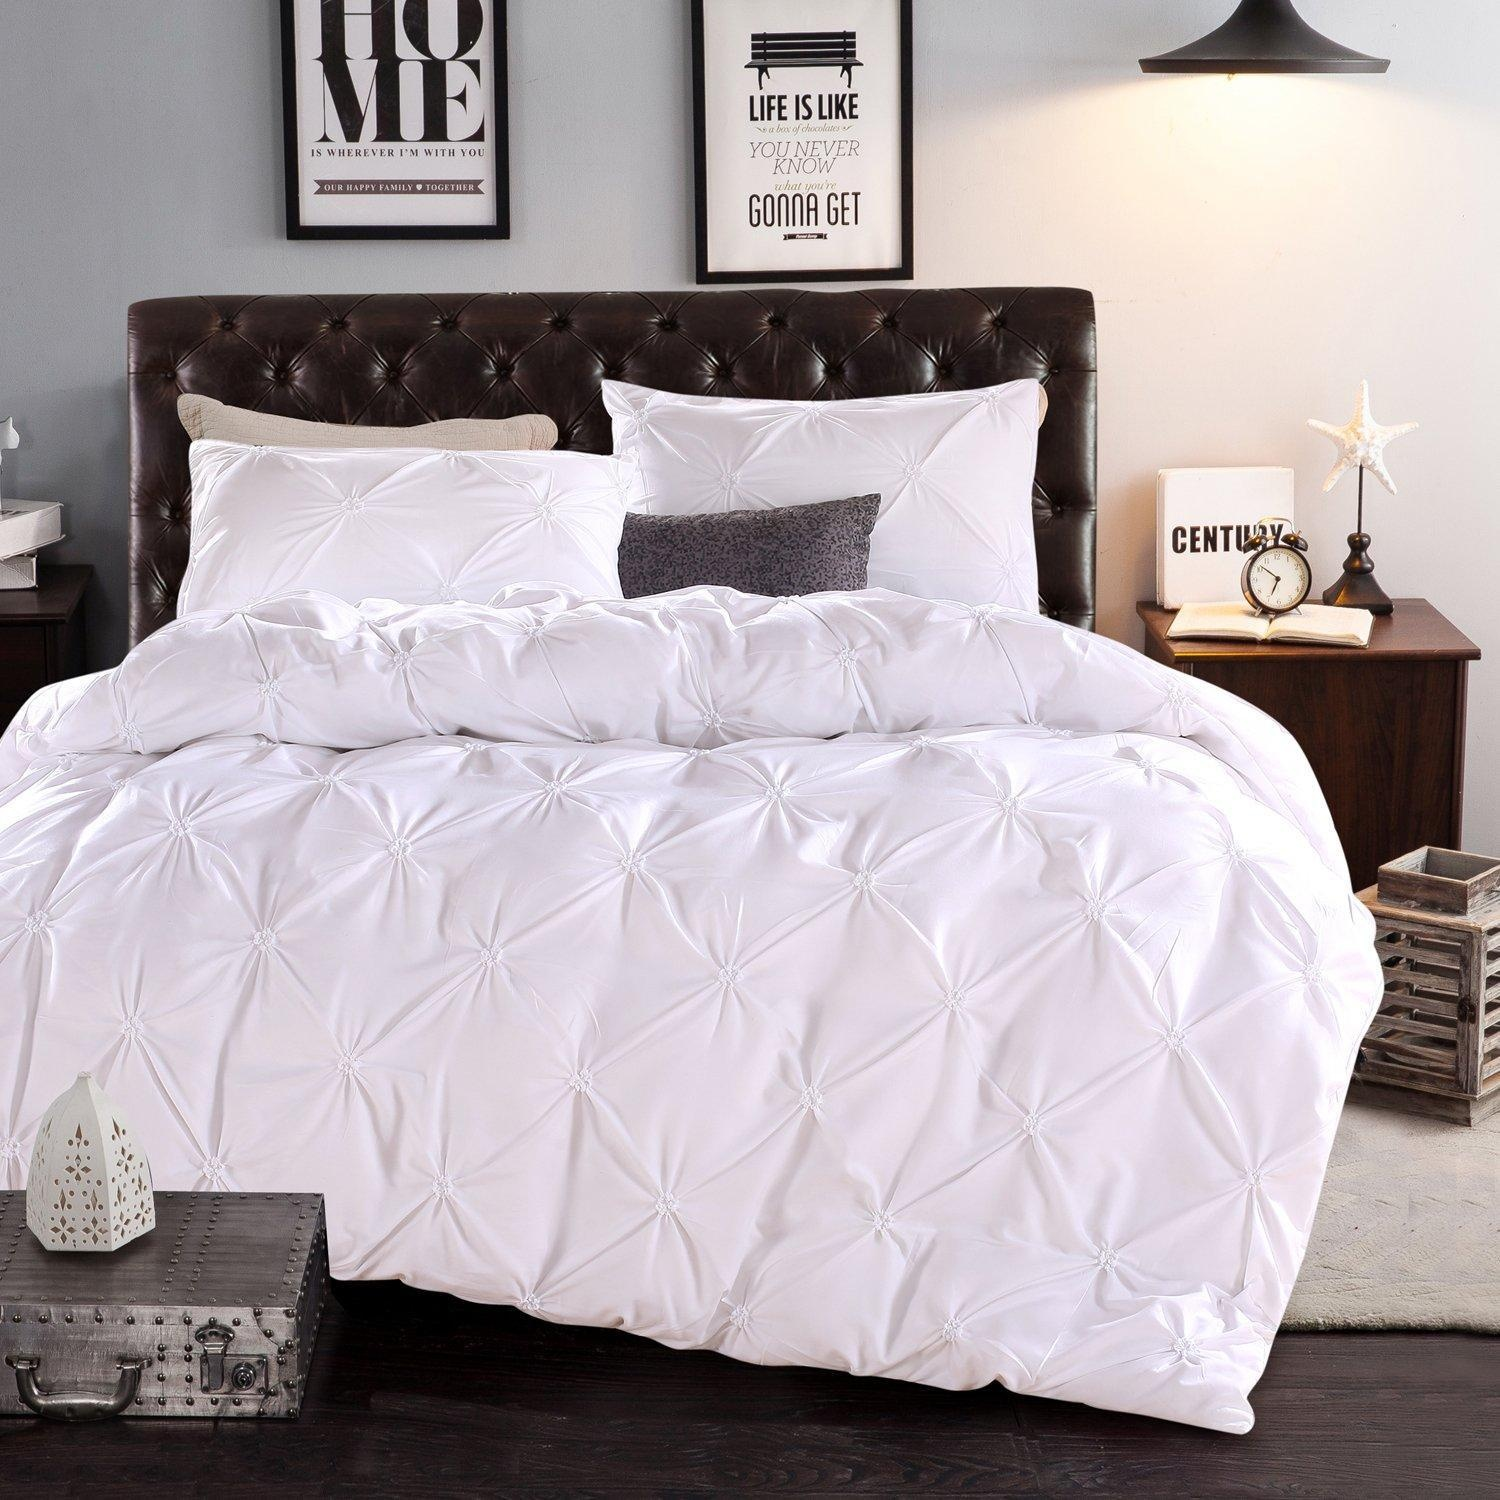 target comforter bed in a bag queen queen size bedding sets